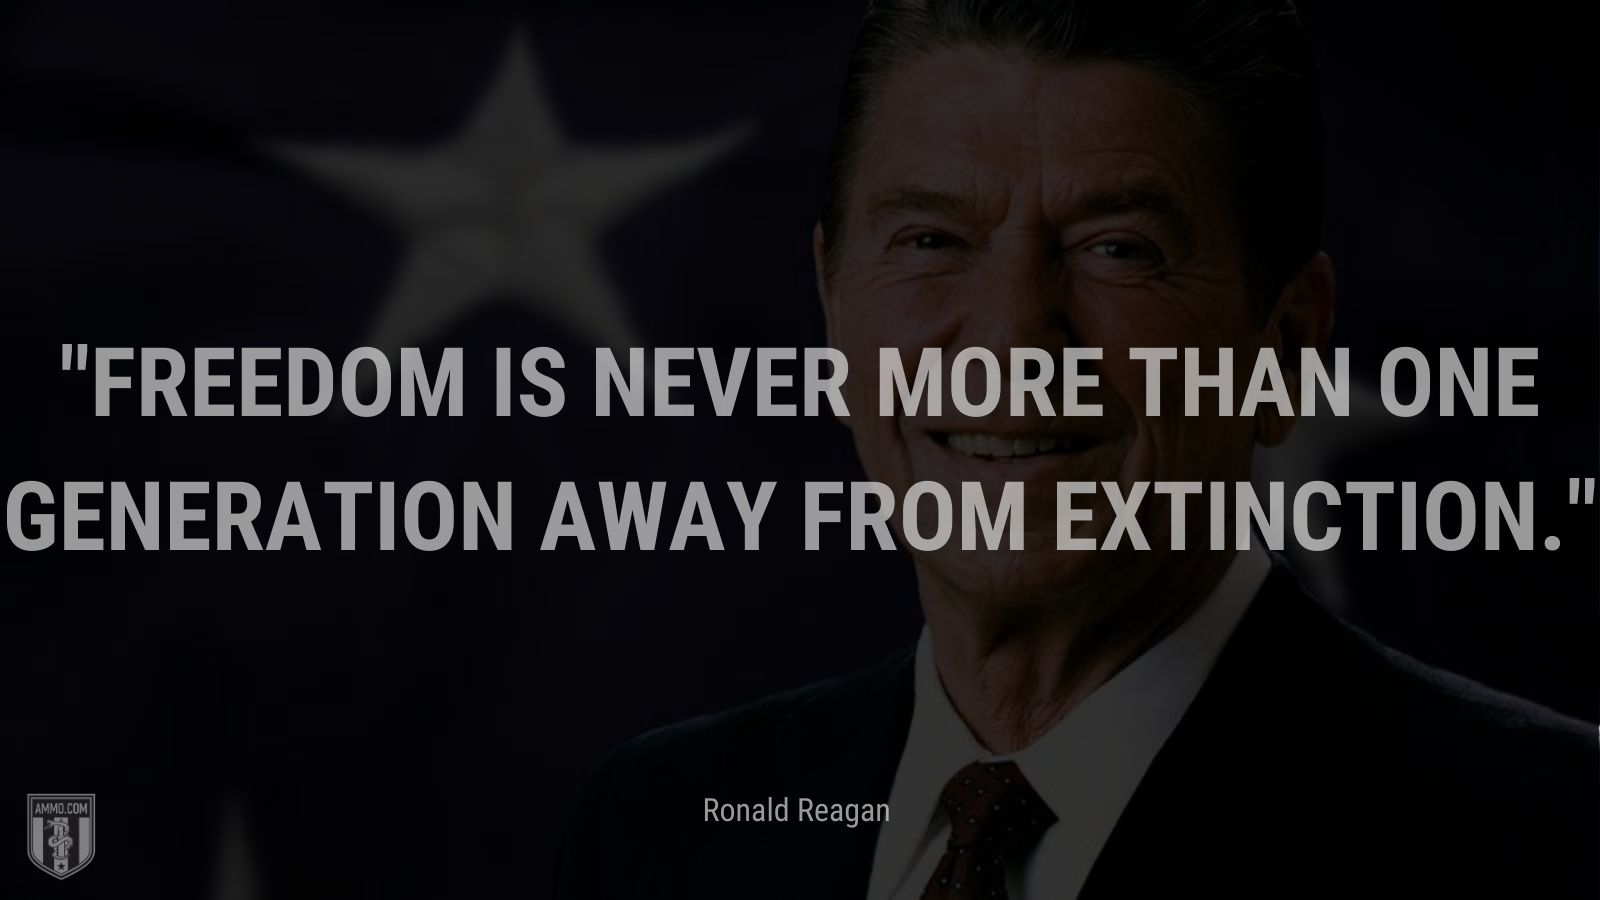 """""""Freedom is never more than one generation away from extinction. - Ronald Reagan"""